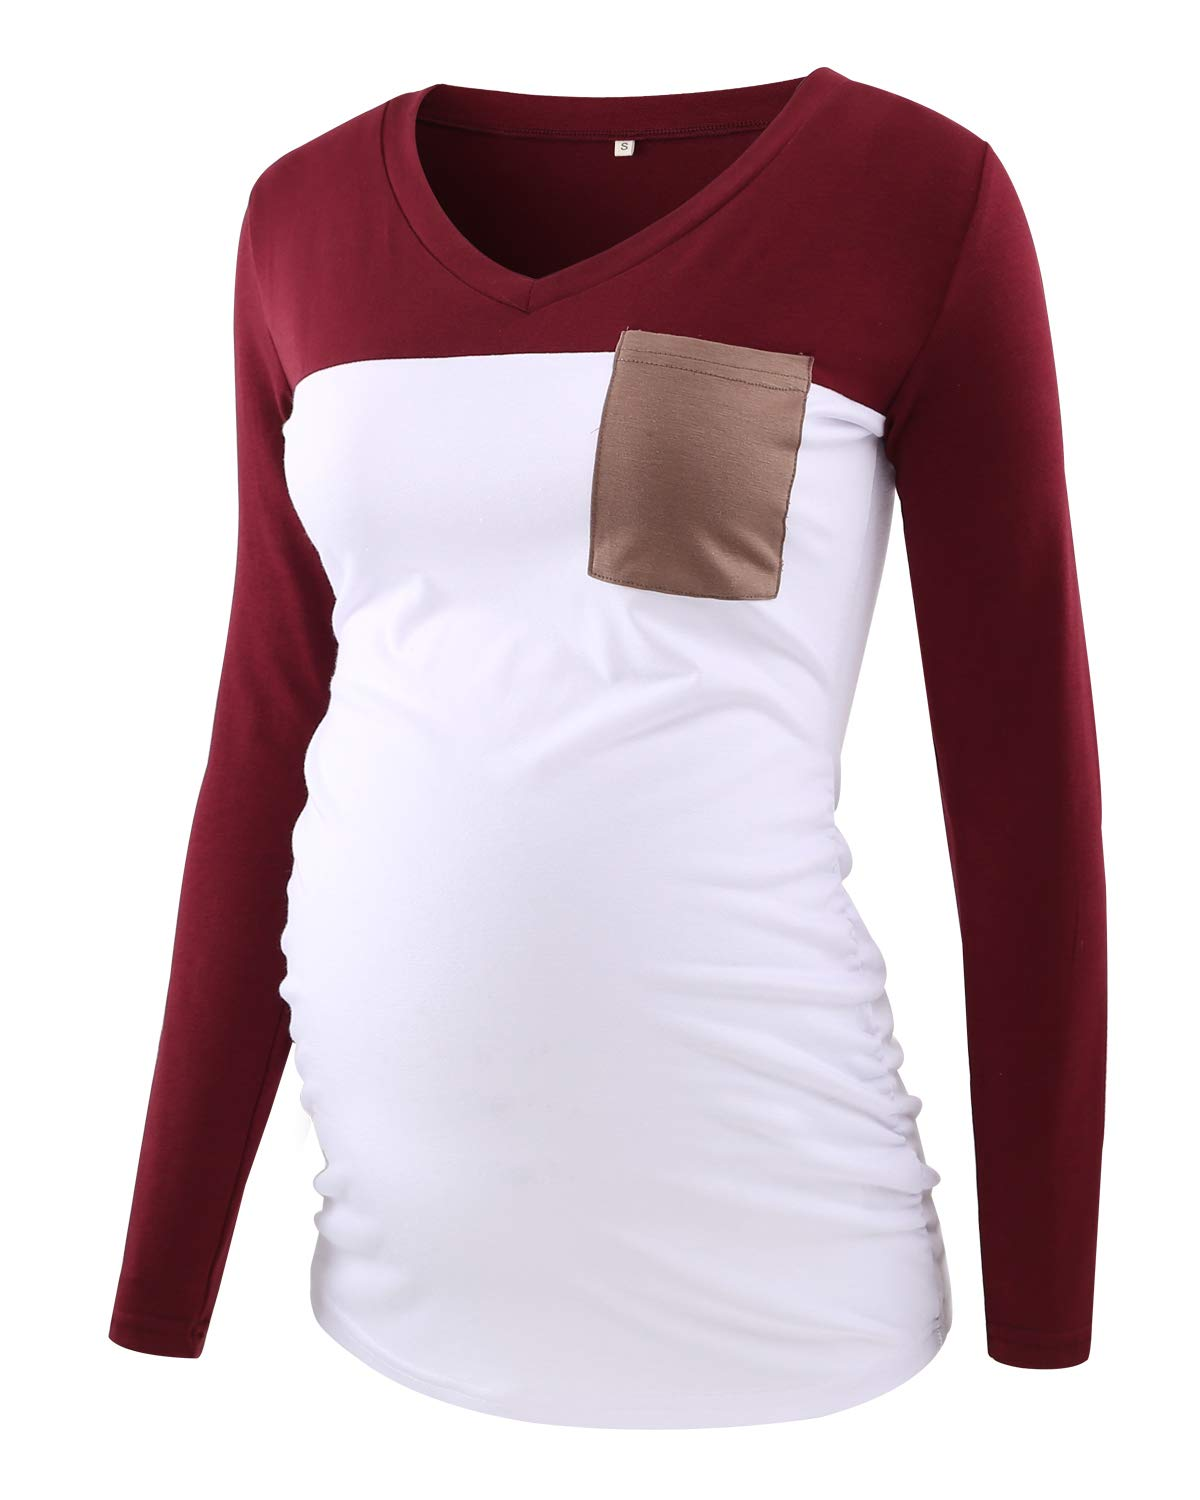 Ecavus Women's Casual Maternity Tops Short & Long Sleeve V Neck Colorblock Pregnancy T-Shirt with Pocket